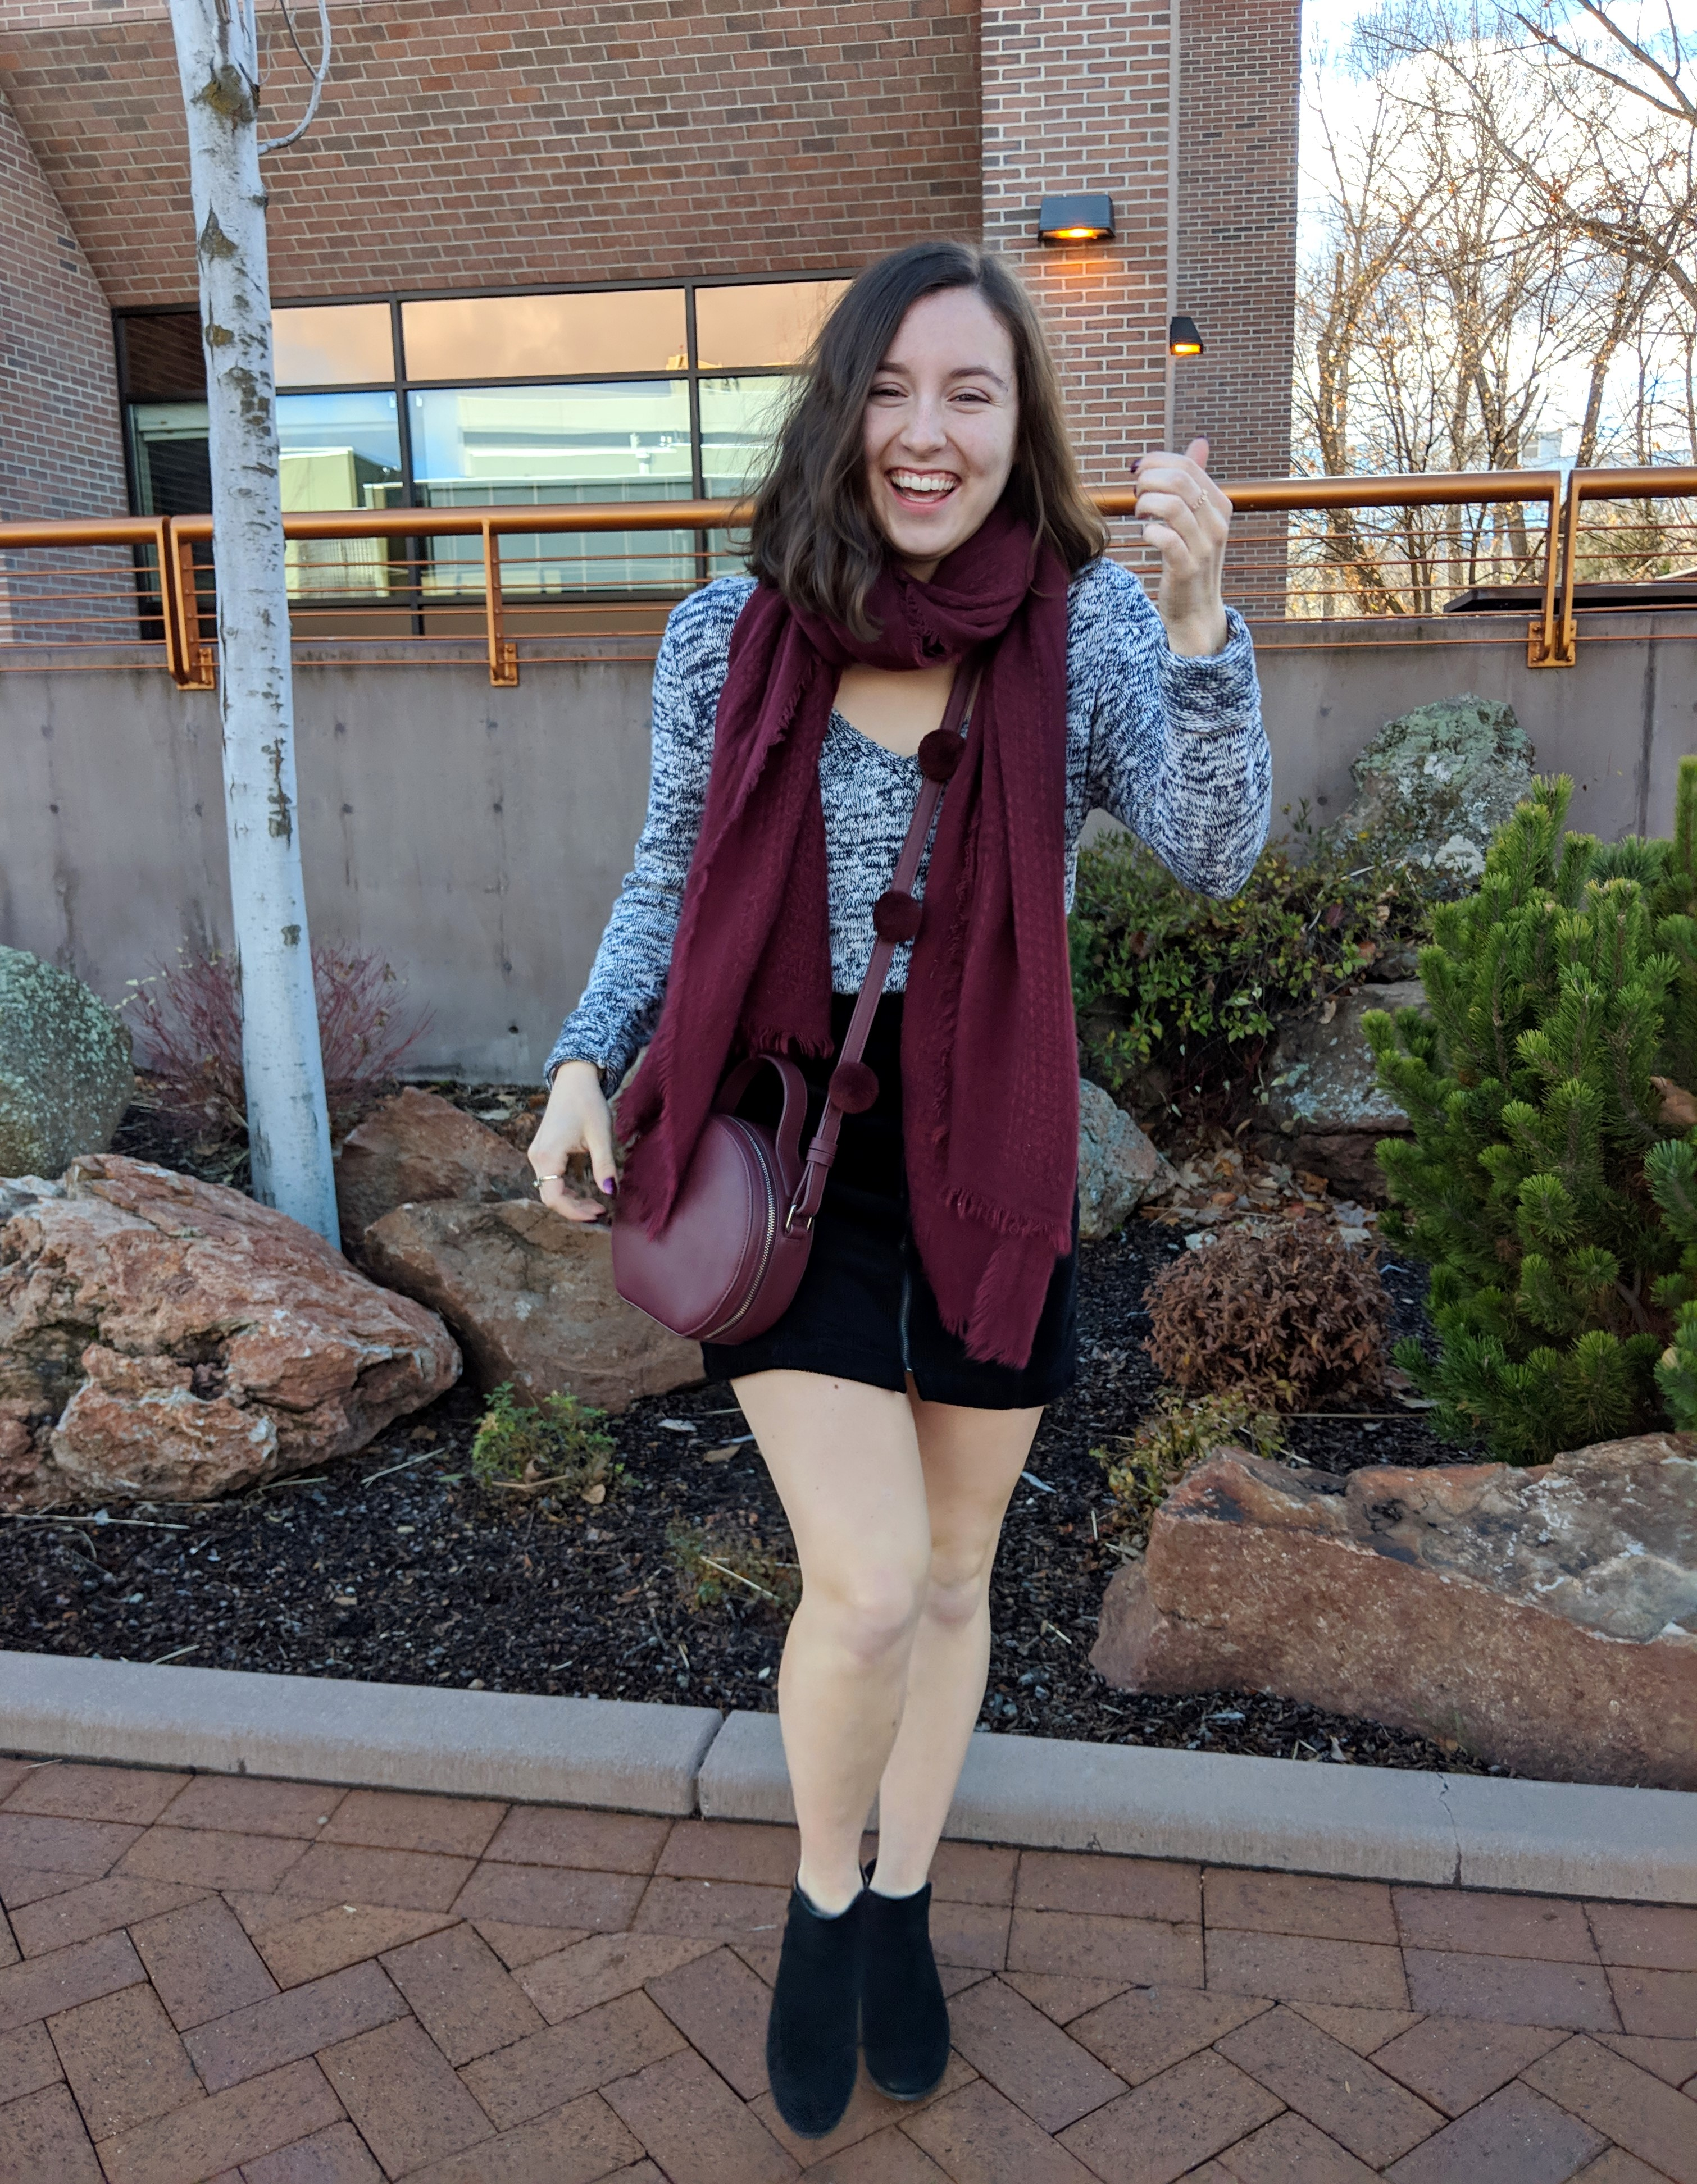 stylish maroon accessories and sweater weather